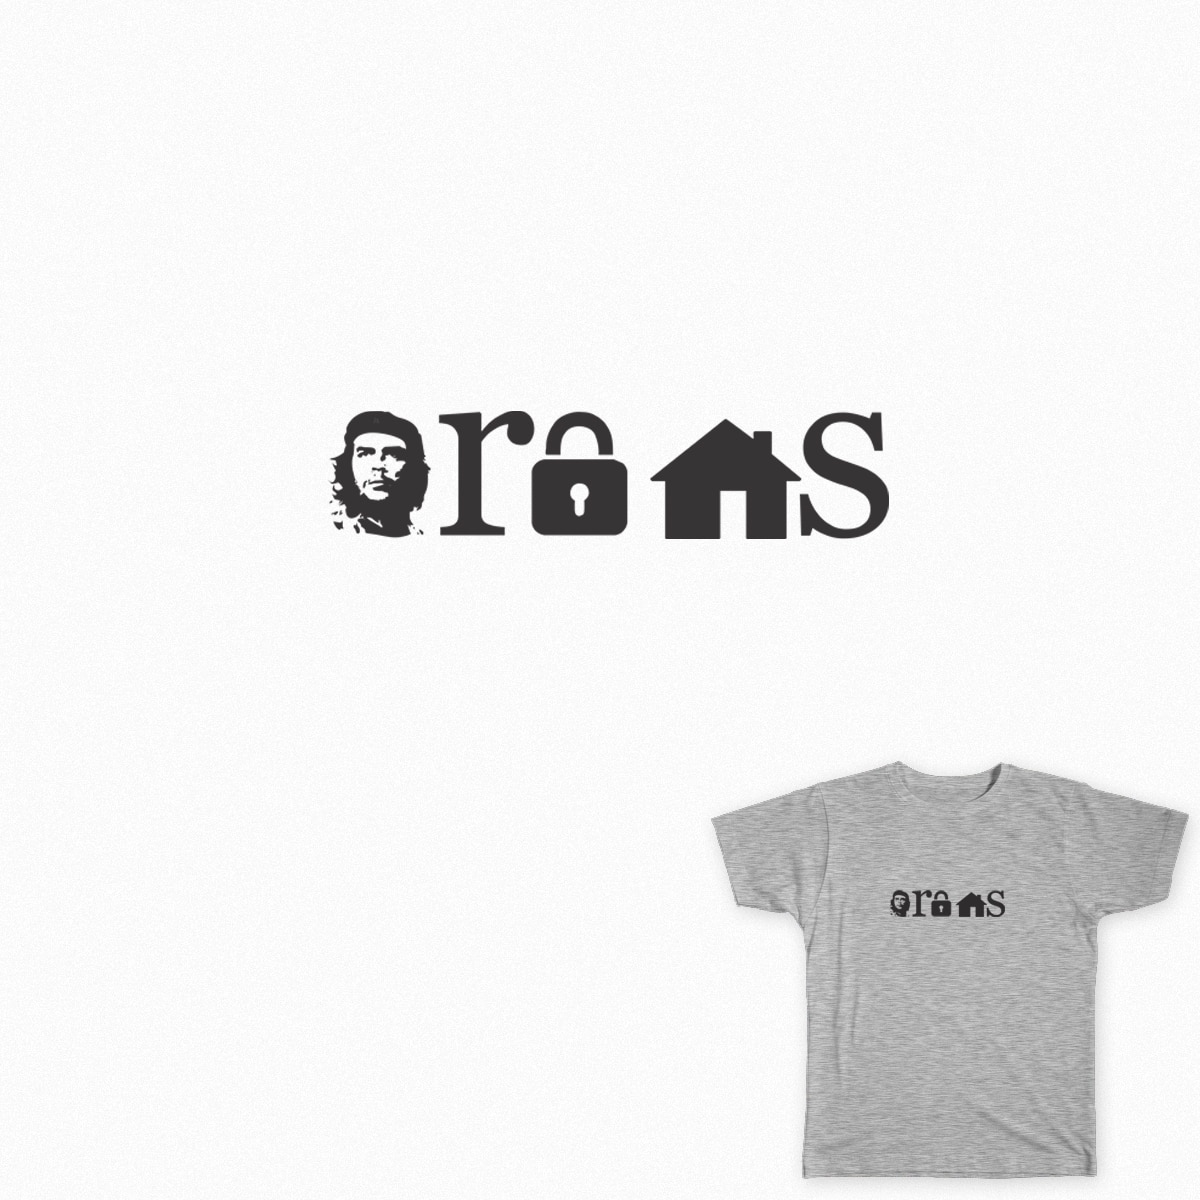 I am in clues by pashya on Threadless